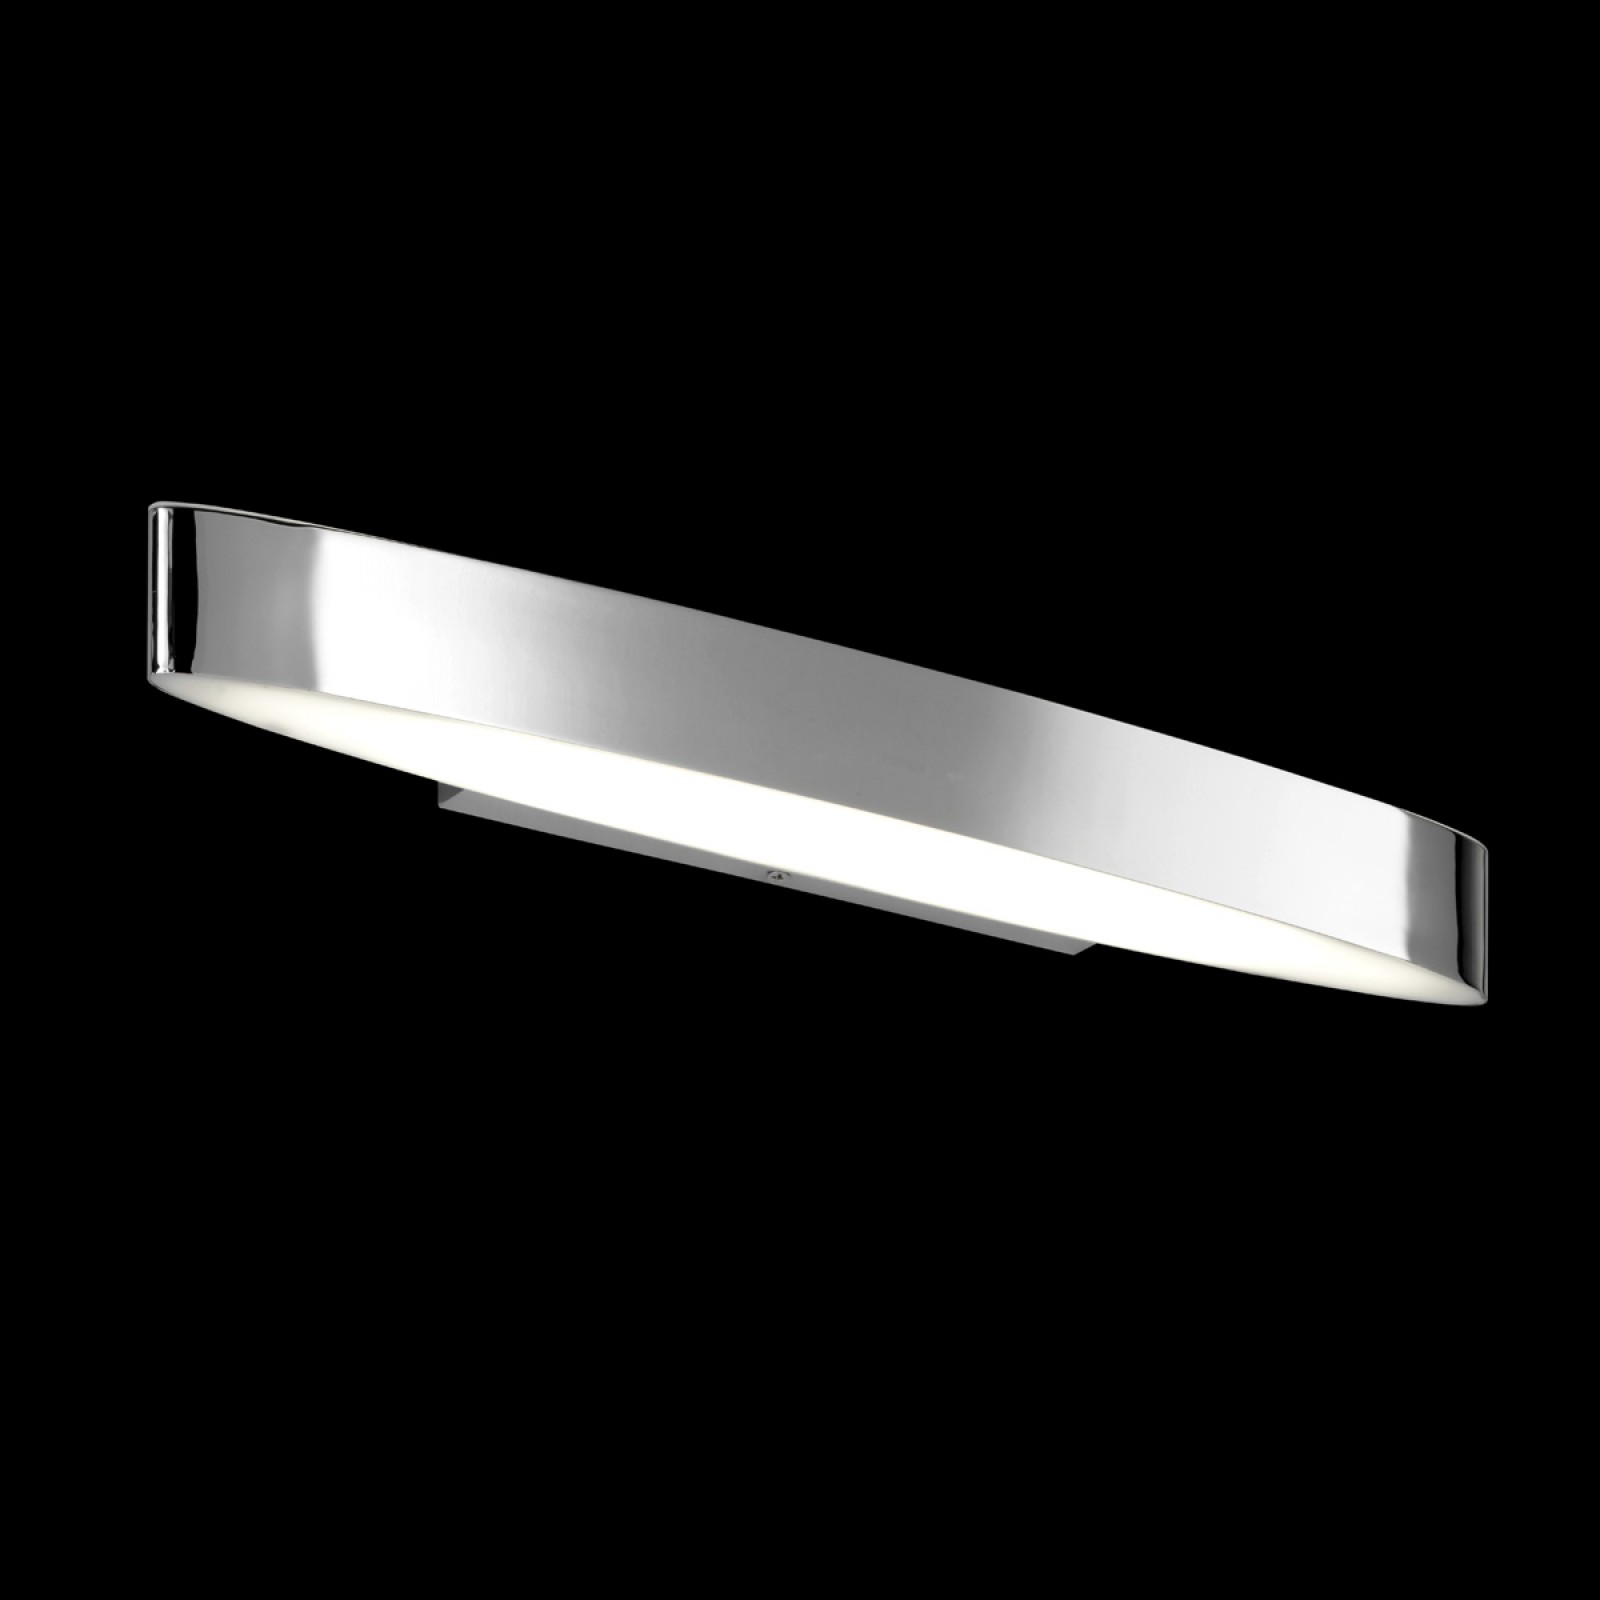 LED-seinävalaisin H2O 2816 500x85x50 mm IP44 kromi